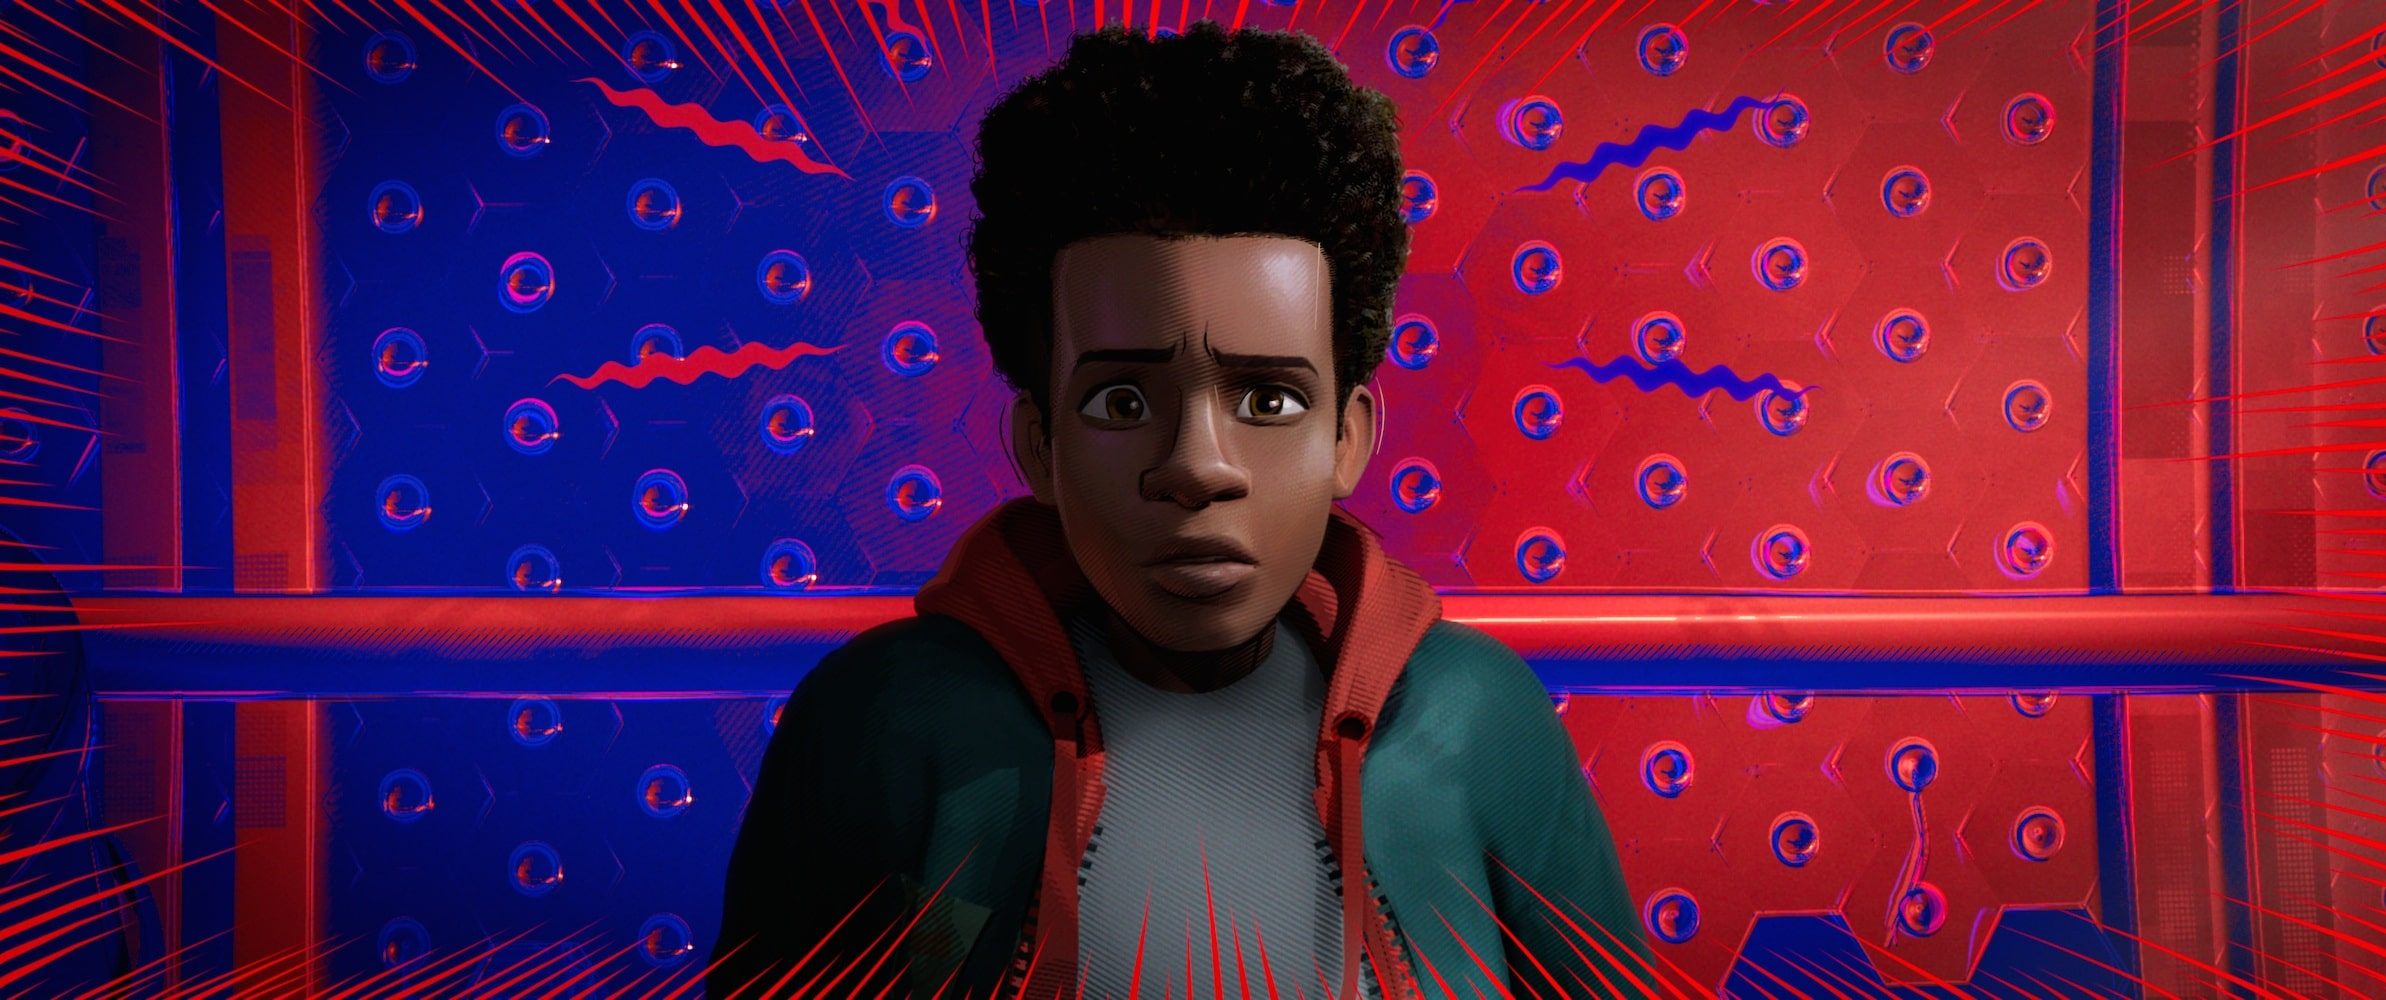 The First Full Trailer for 'Spider-Man: Into the Spider-Verse' Featuring Afro-Latino Miles Morales Is Here